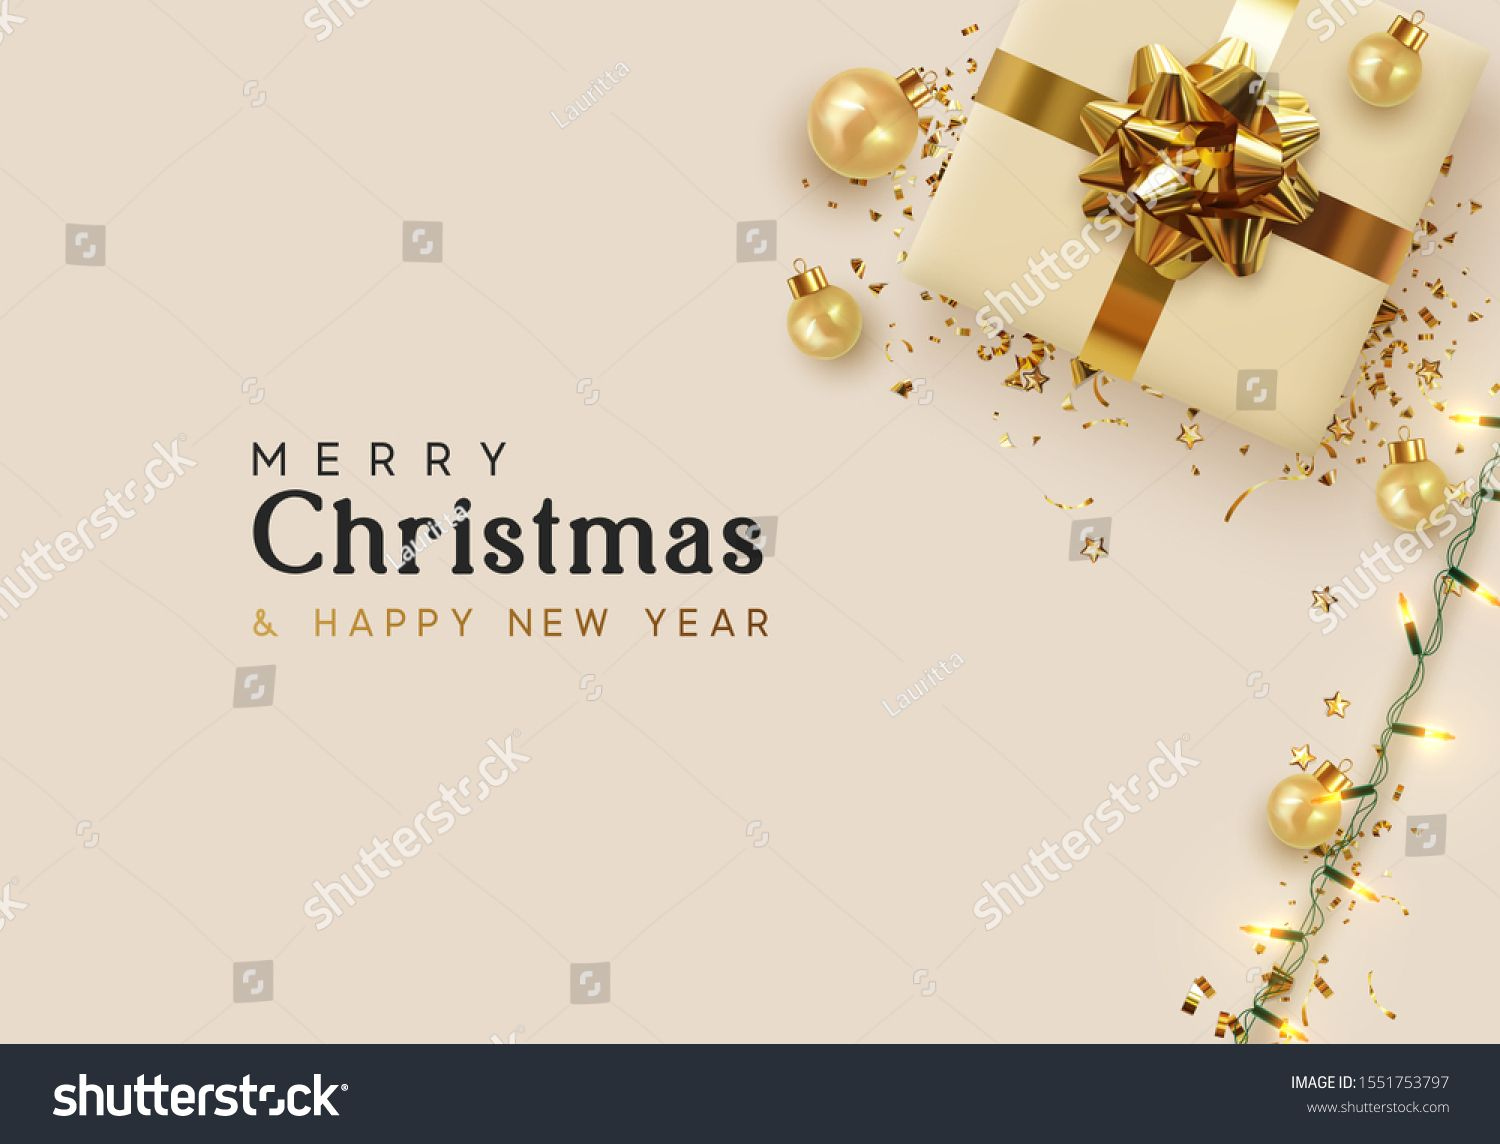 Holiday Background Merry Christmas And Happy New Year Xmas Design With Realistic Objects Holiday Background Merry Christmas And Happy New Year Merry Christmas